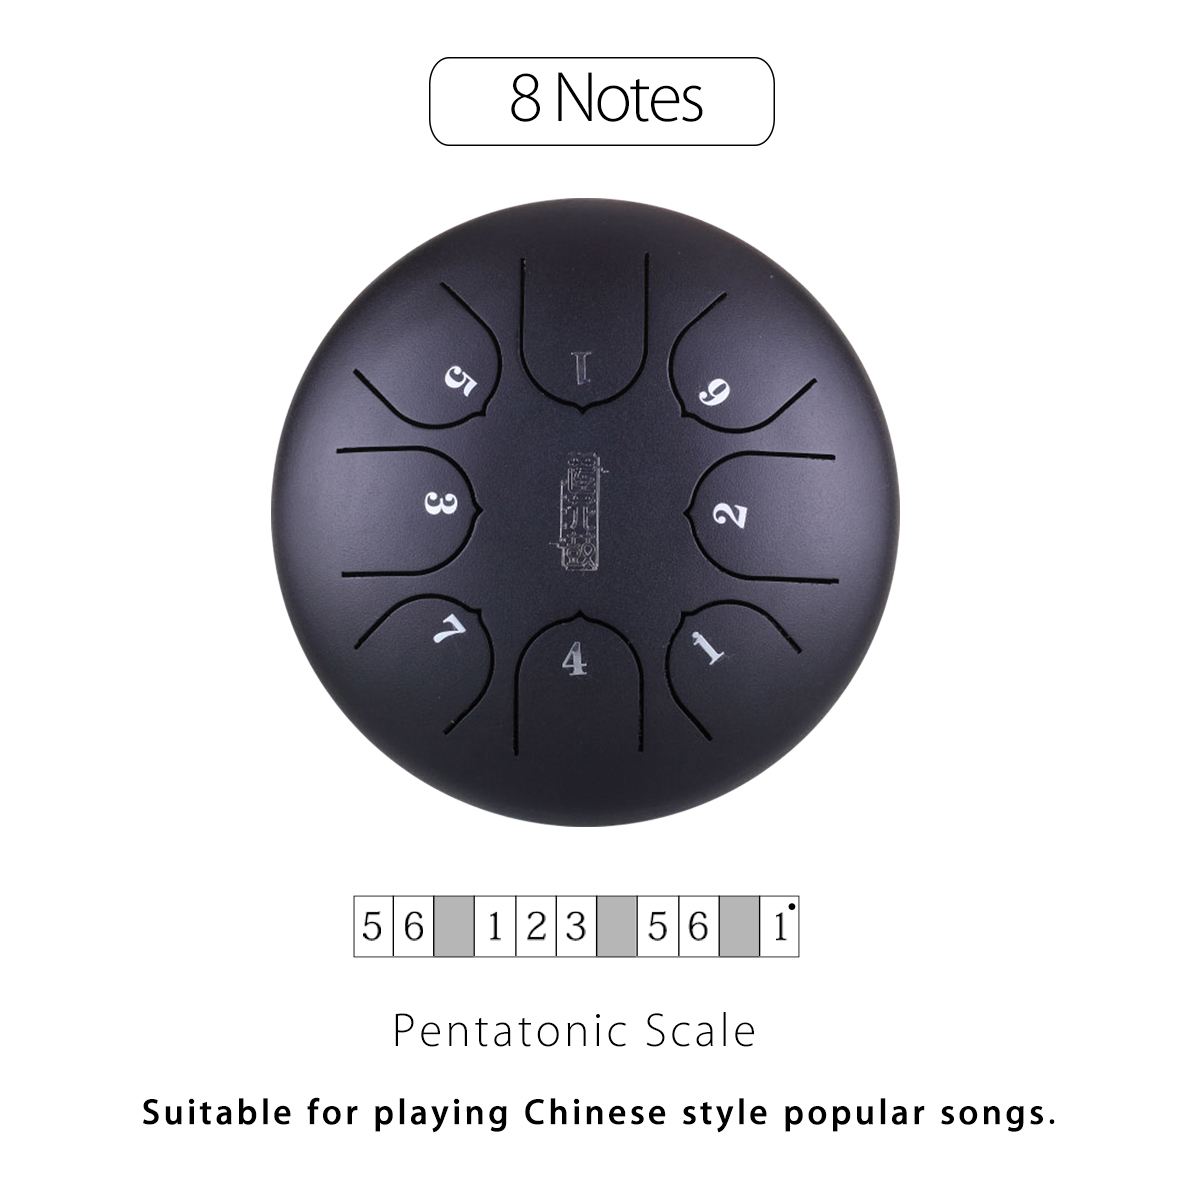 hight resolution of  secondary tuning 99 pitch can be used as a musical instrument perfect for yoga and meditation help you relax rb9kflvoe6sab3 xaatz1pfskmk398